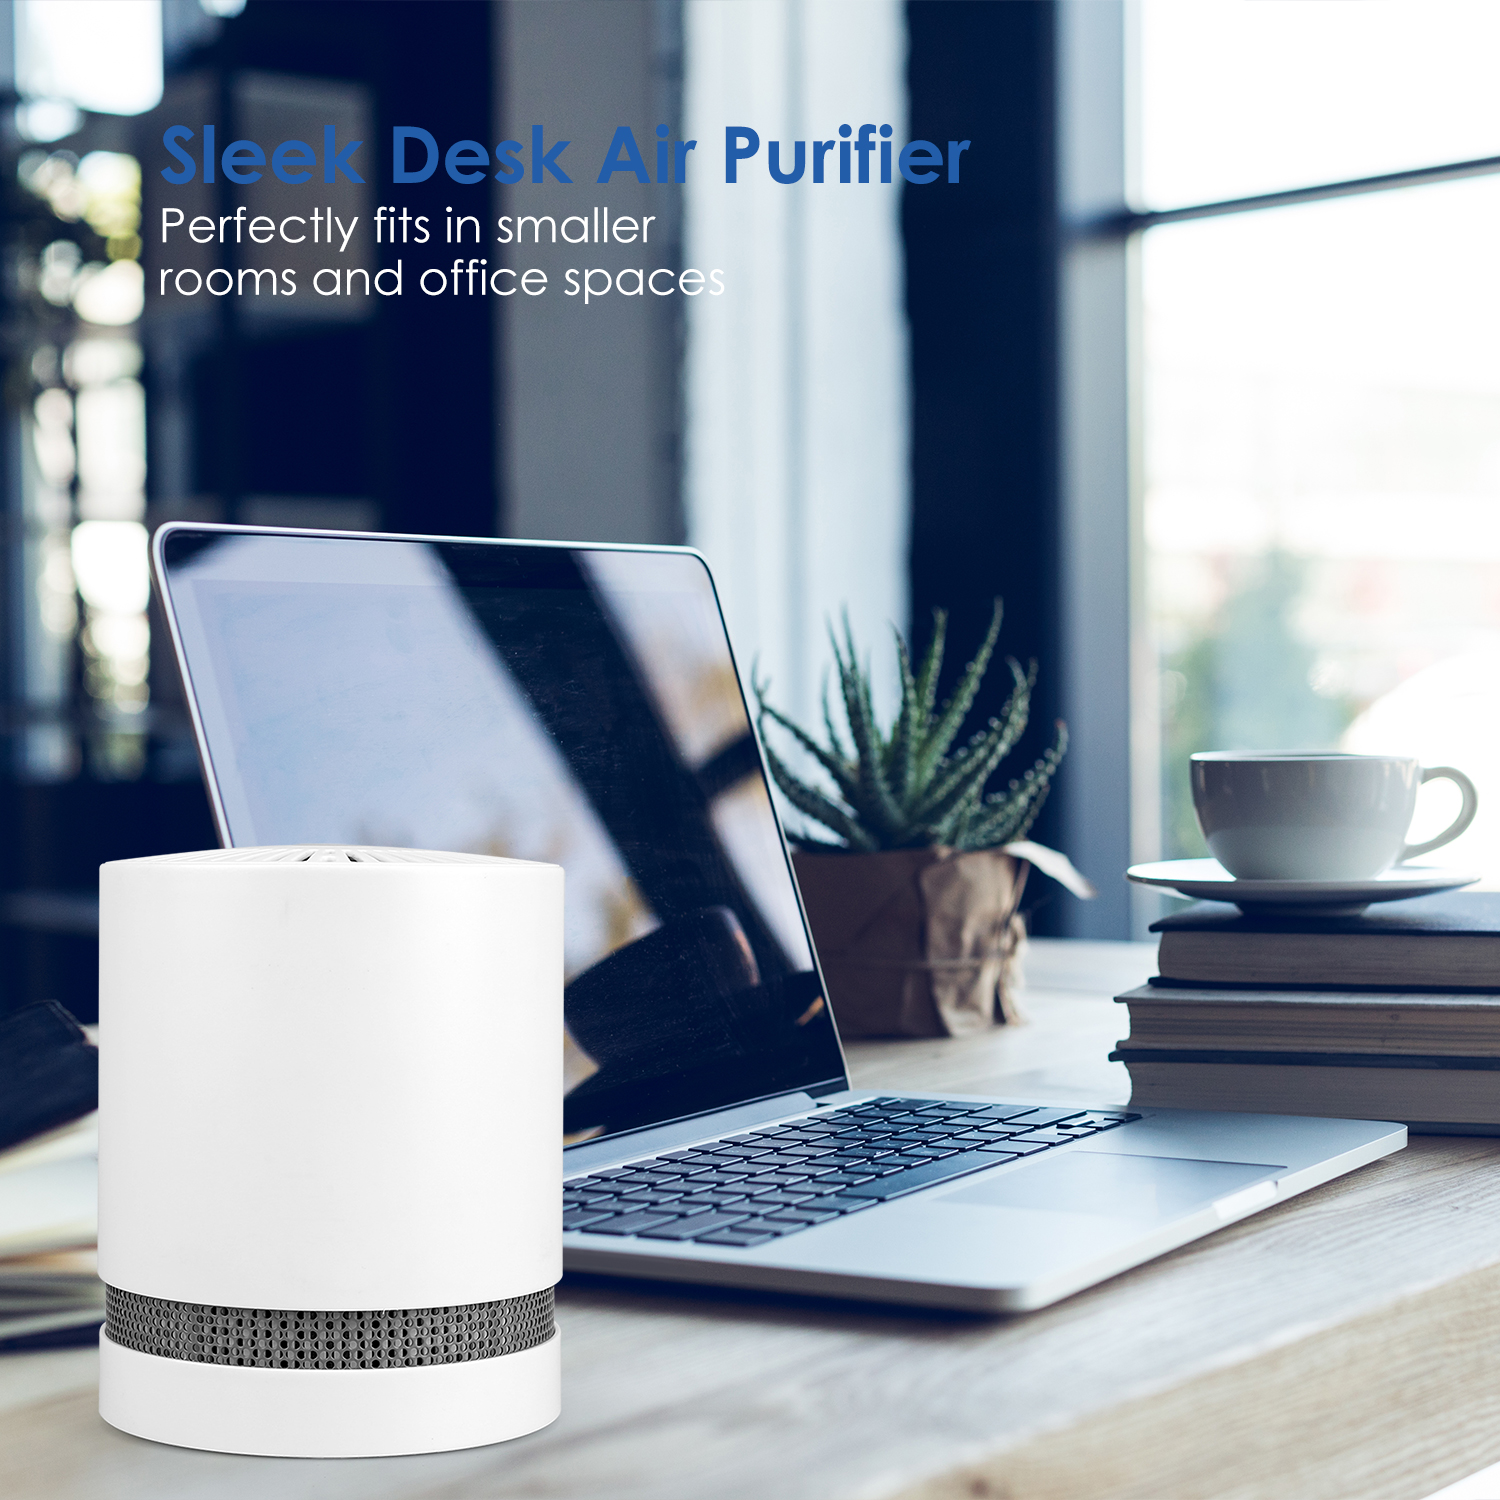 Large-Room-Air-Purifier-with-True-HEPA-Filter-Remove-Allergies-Odors-Noise-free miniature 23